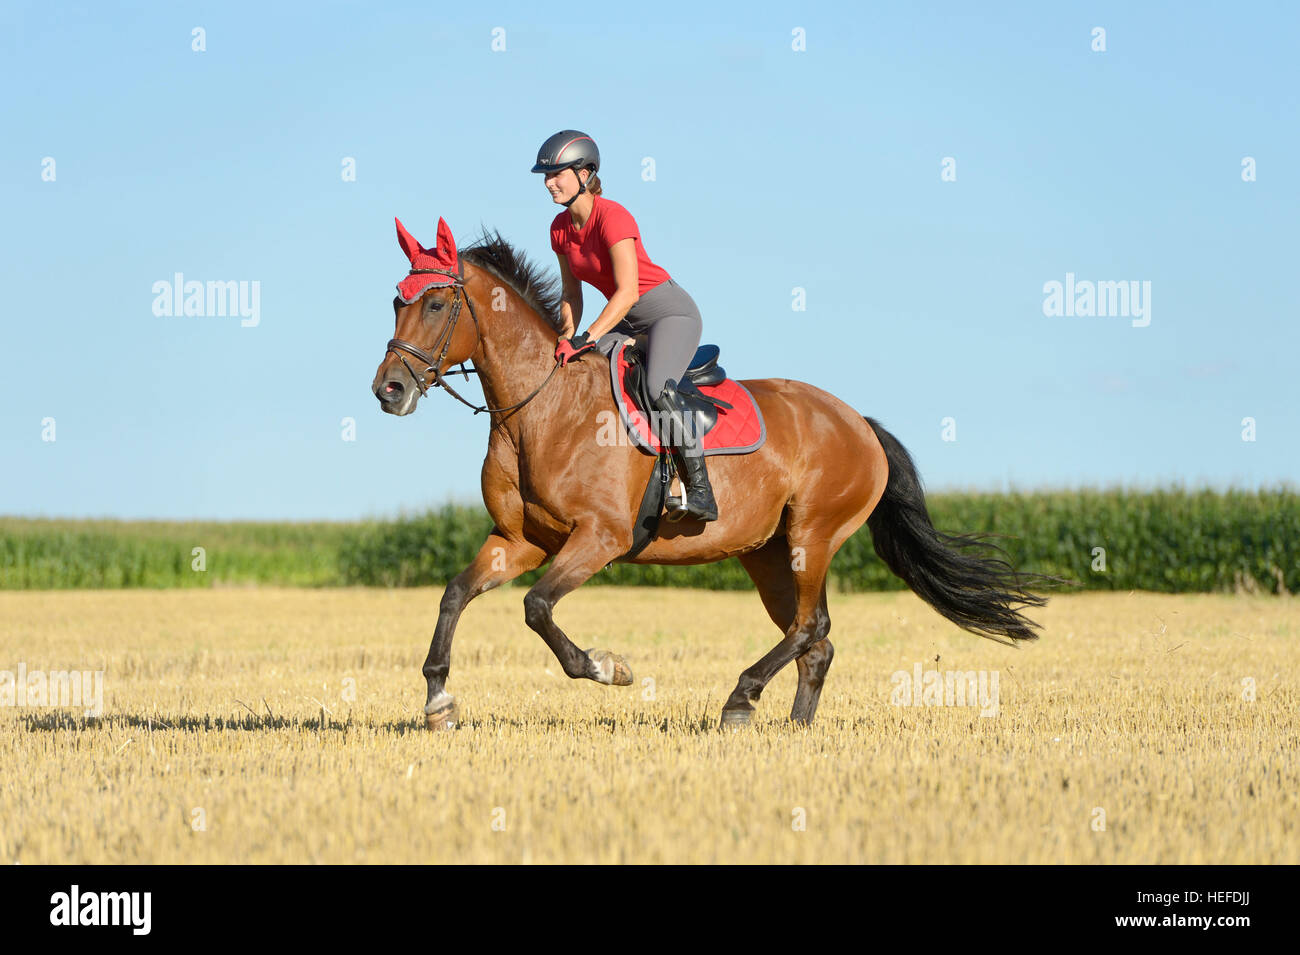 Rider cantering in a stubble field - Stock Image